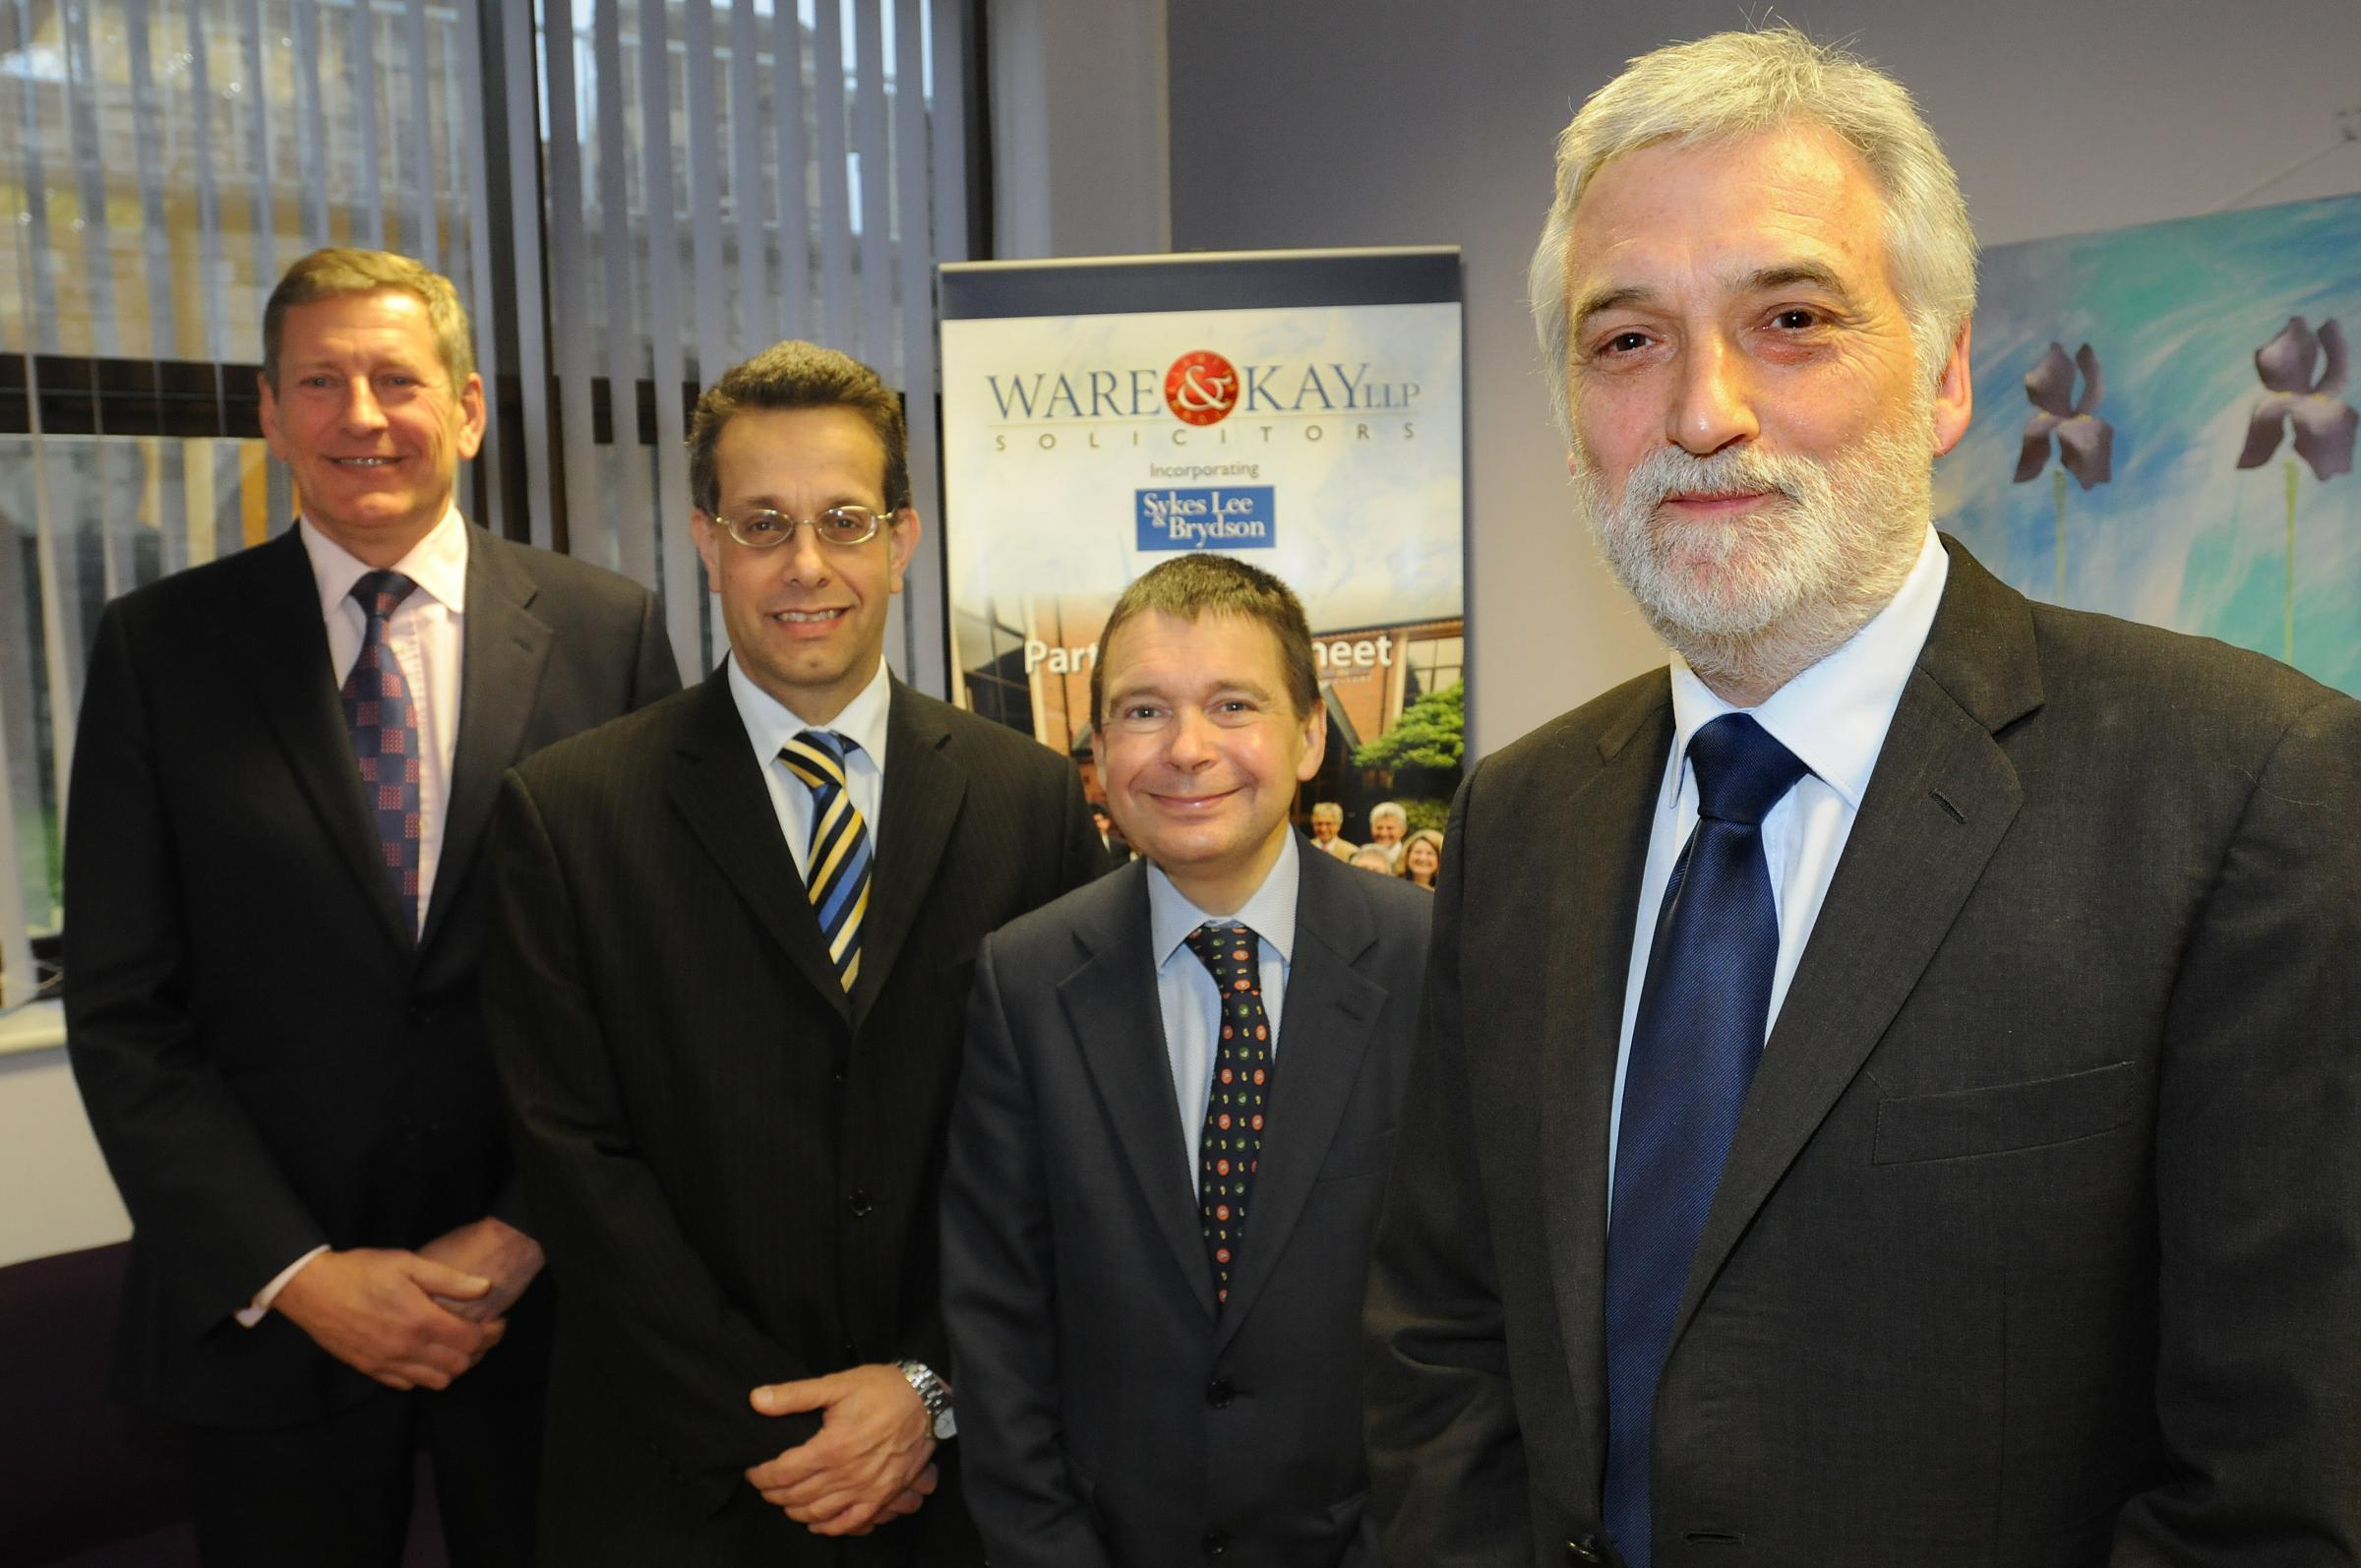 David Liddell, right, retires from Ware & Kay  Solicitors after 30 years, watched by colleagues, from left, senior partner Peter Kay, David Hyams and Steven Partridge